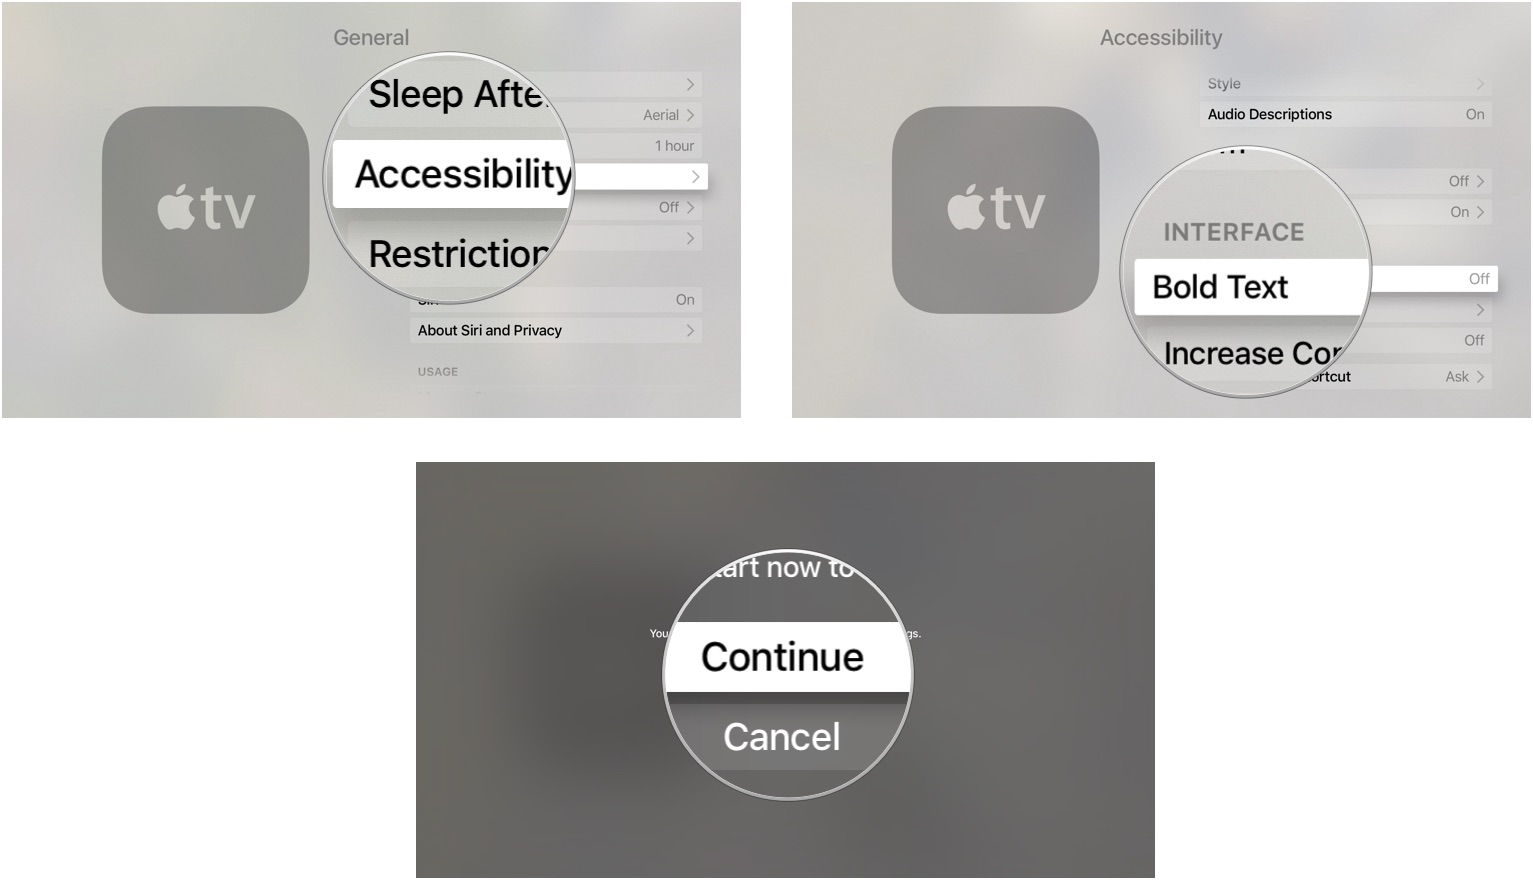 enabling bold text on apple tv [ 1533 x 880 Pixel ]